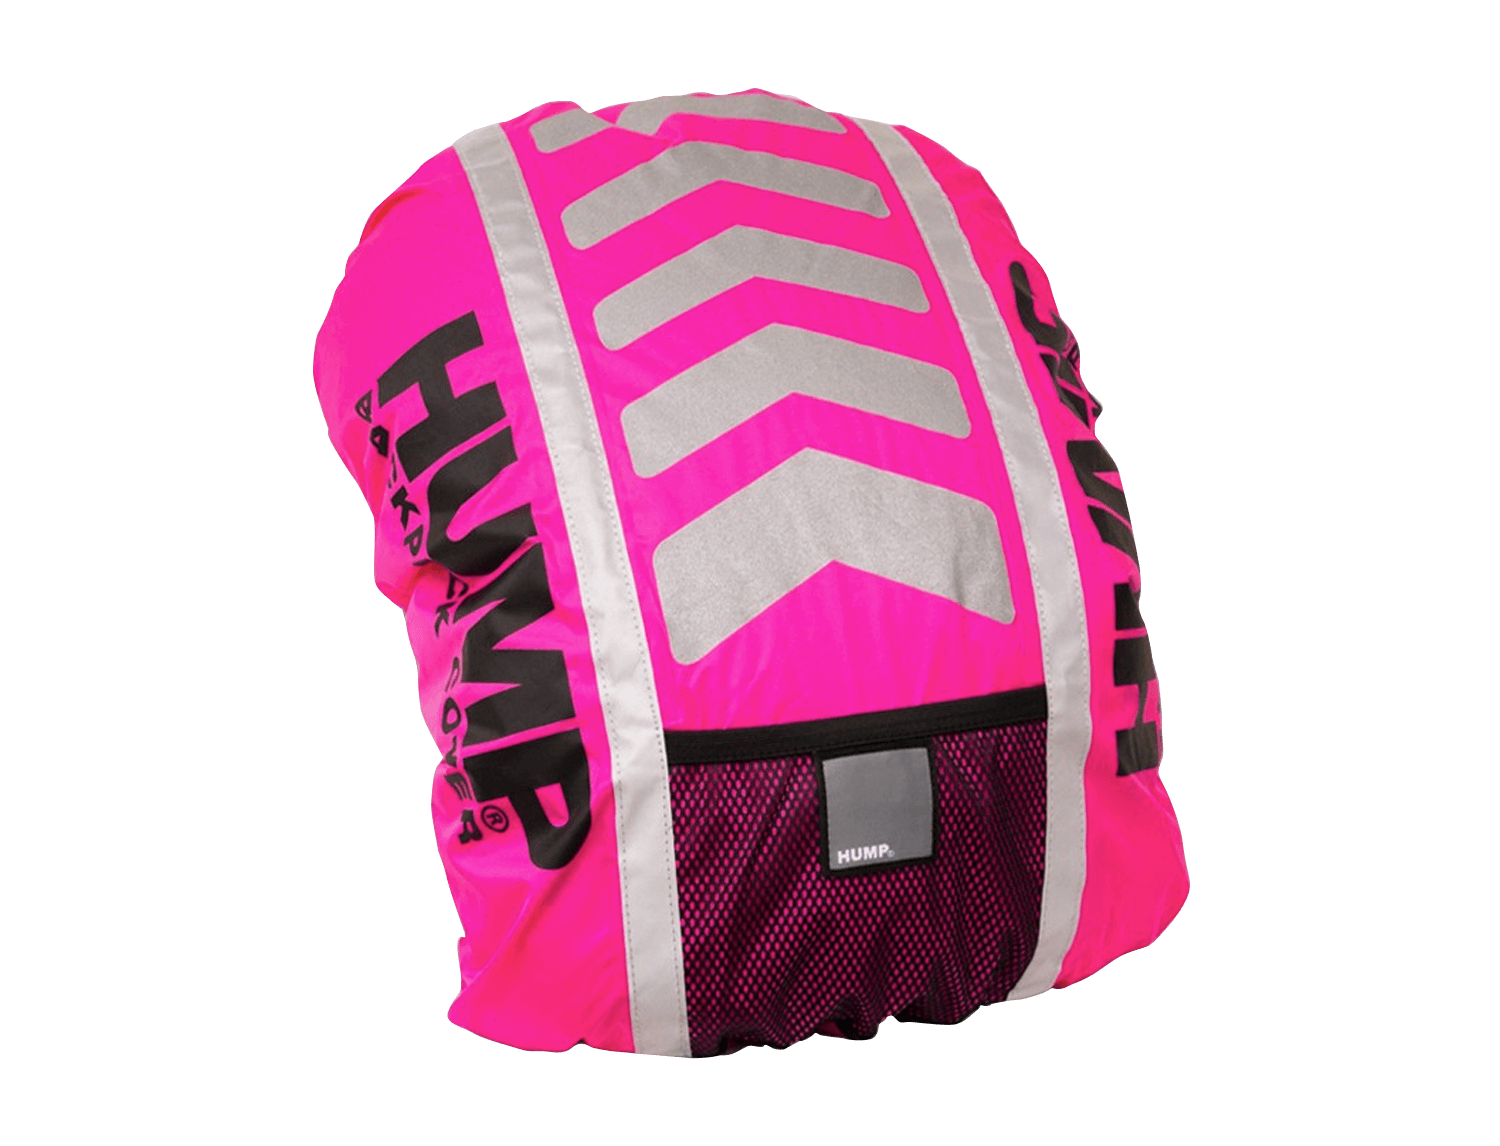 Deluxe Hump - Pink Glow